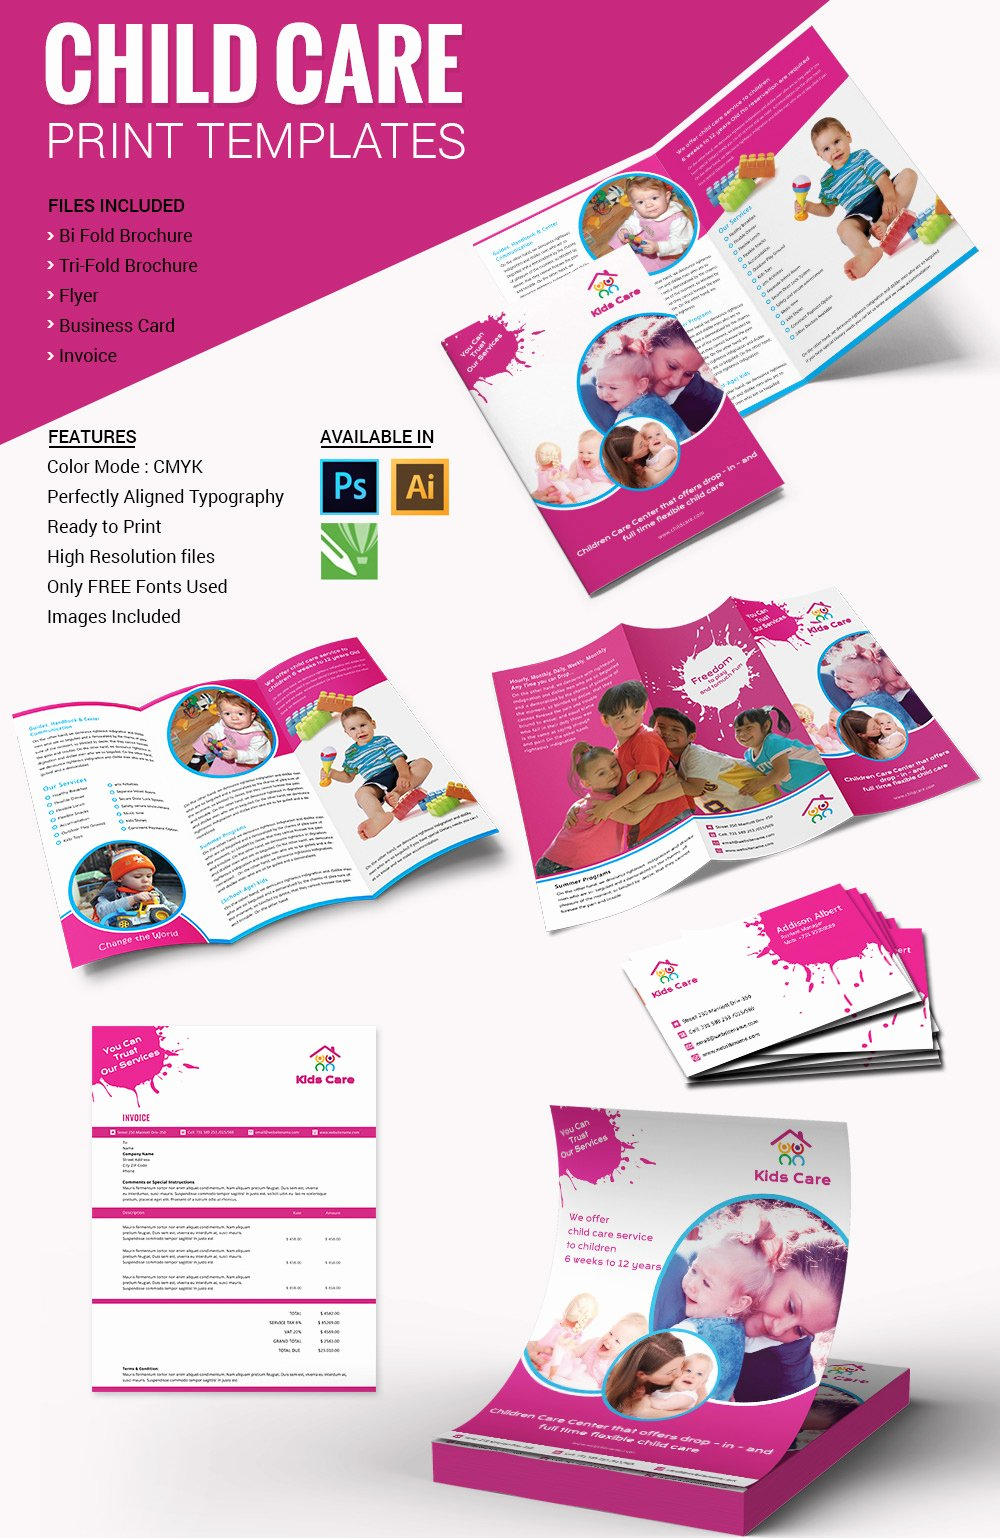 Daycare Flyers Templates Free Awesome 10 Beautiful Child Care Brochure Templates